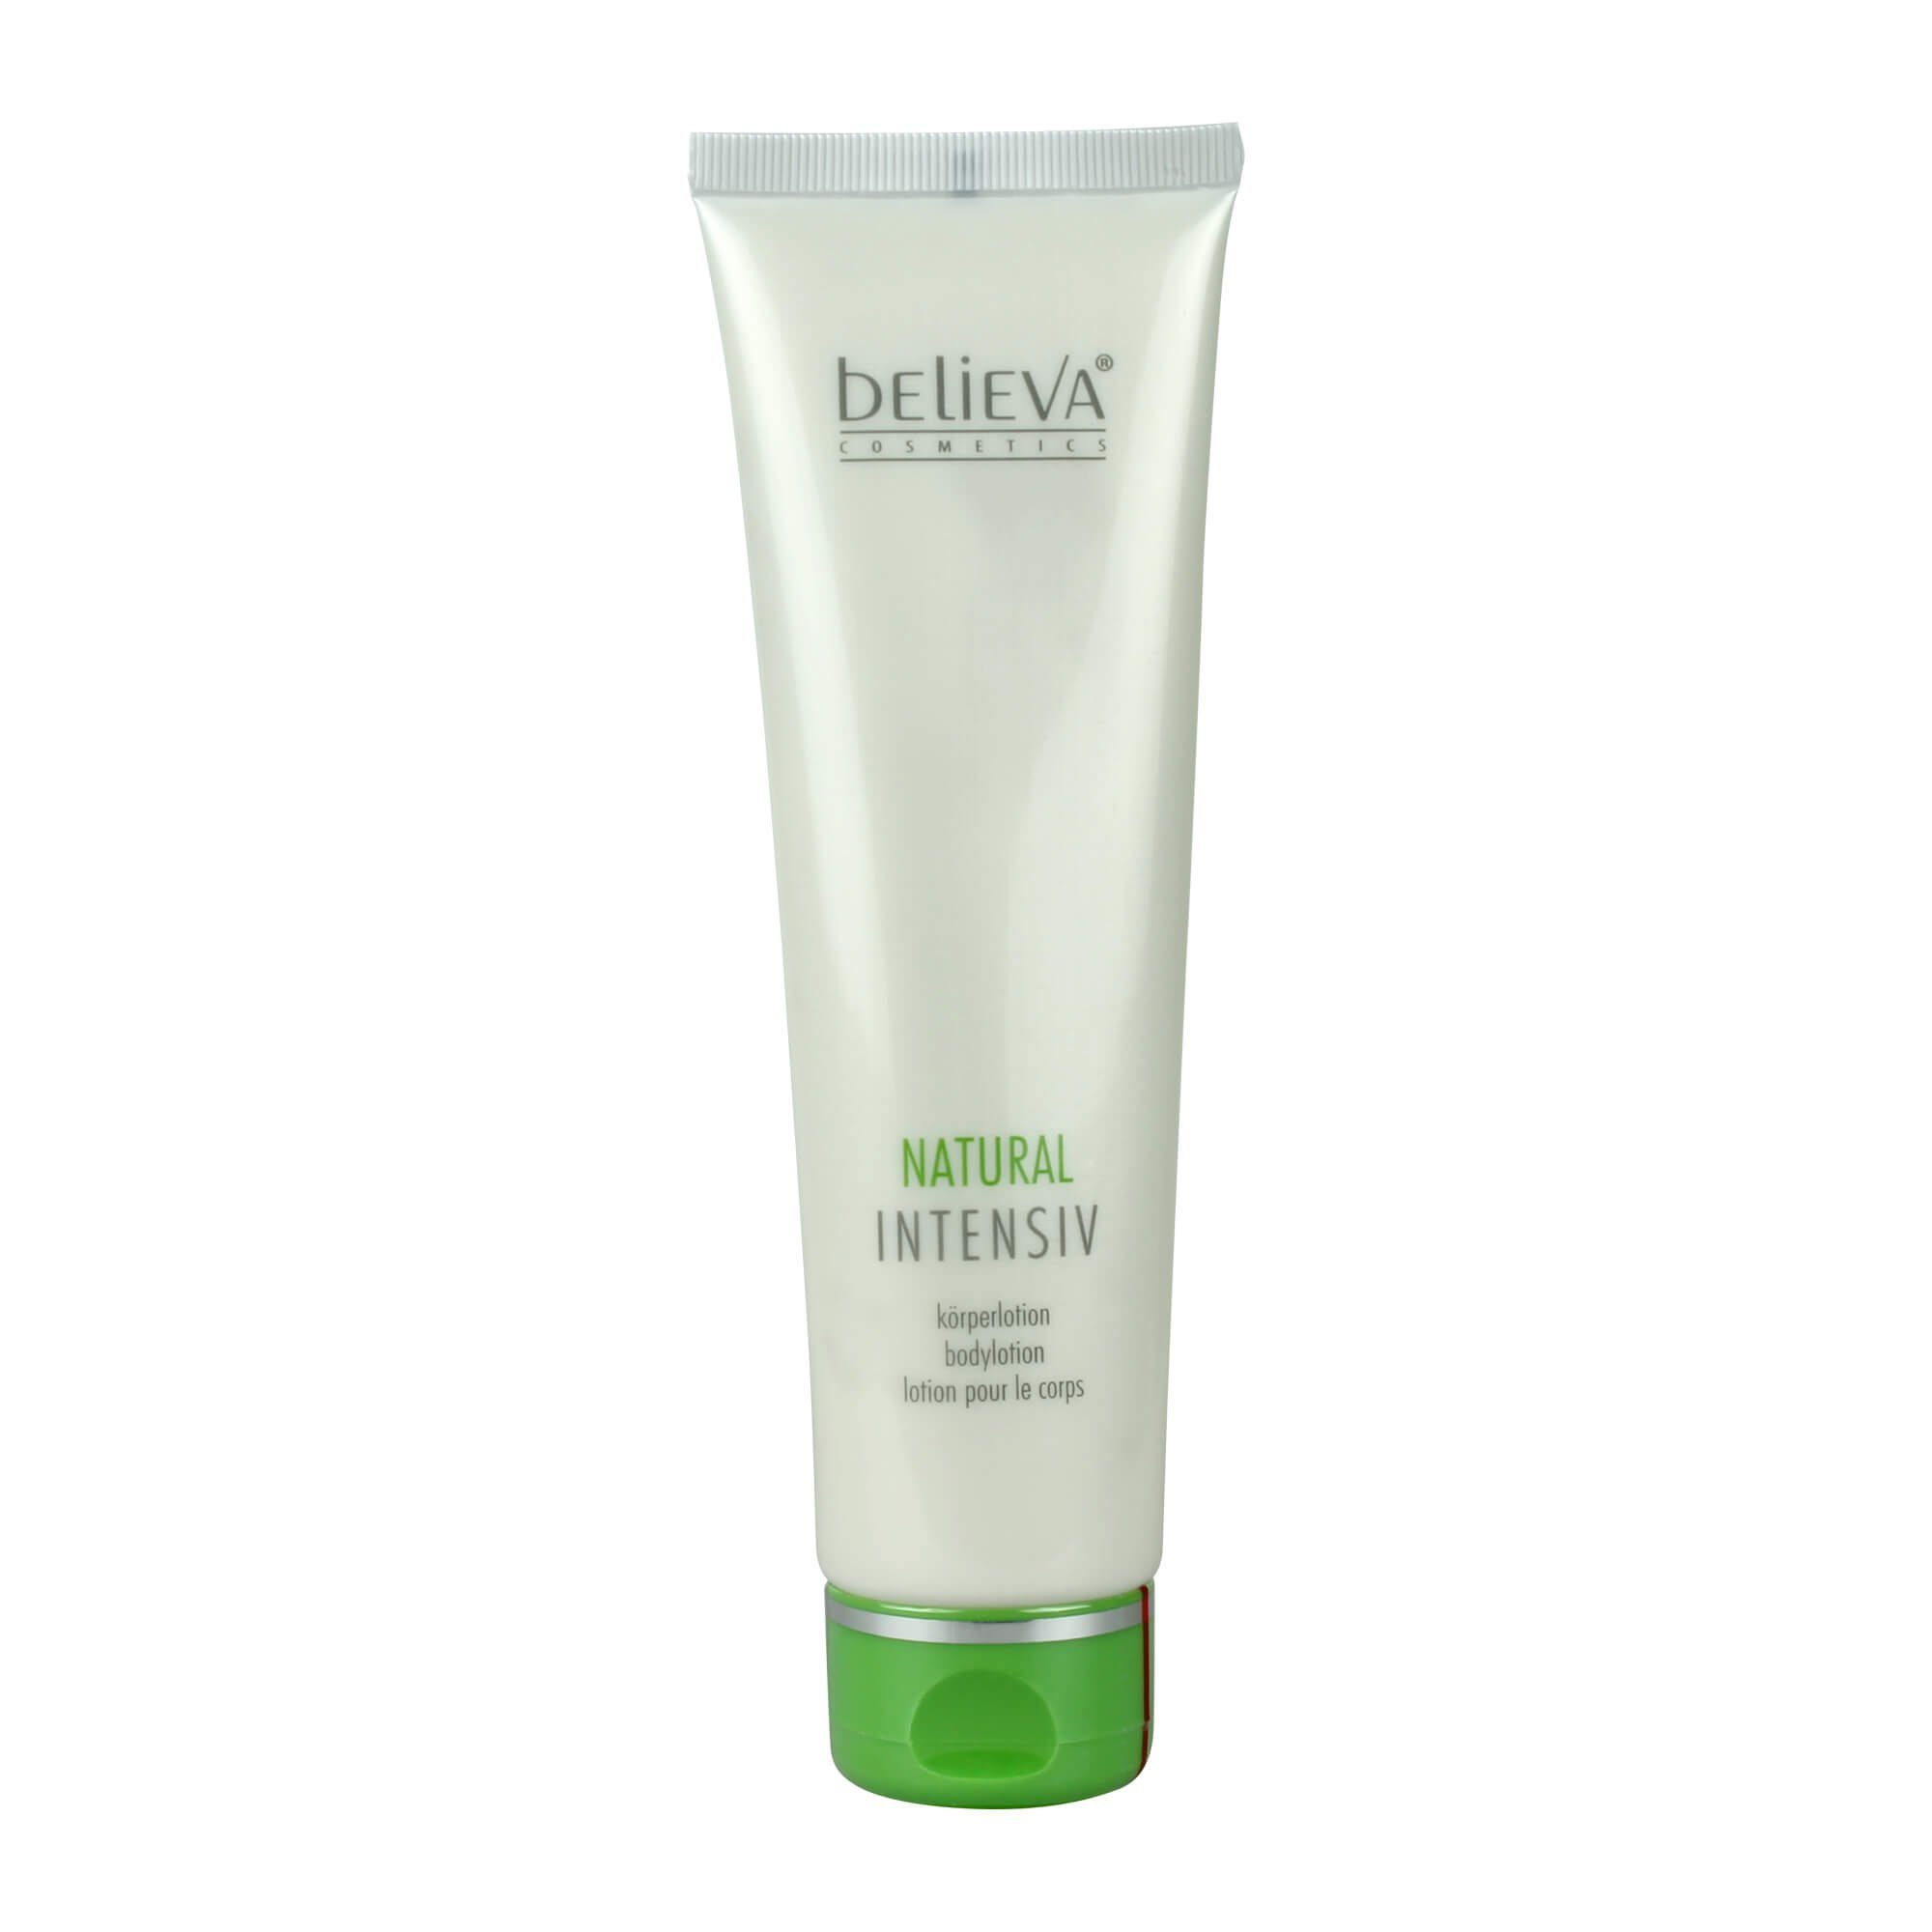 Believa Natural Intensiv Körperlotion , 150 ml